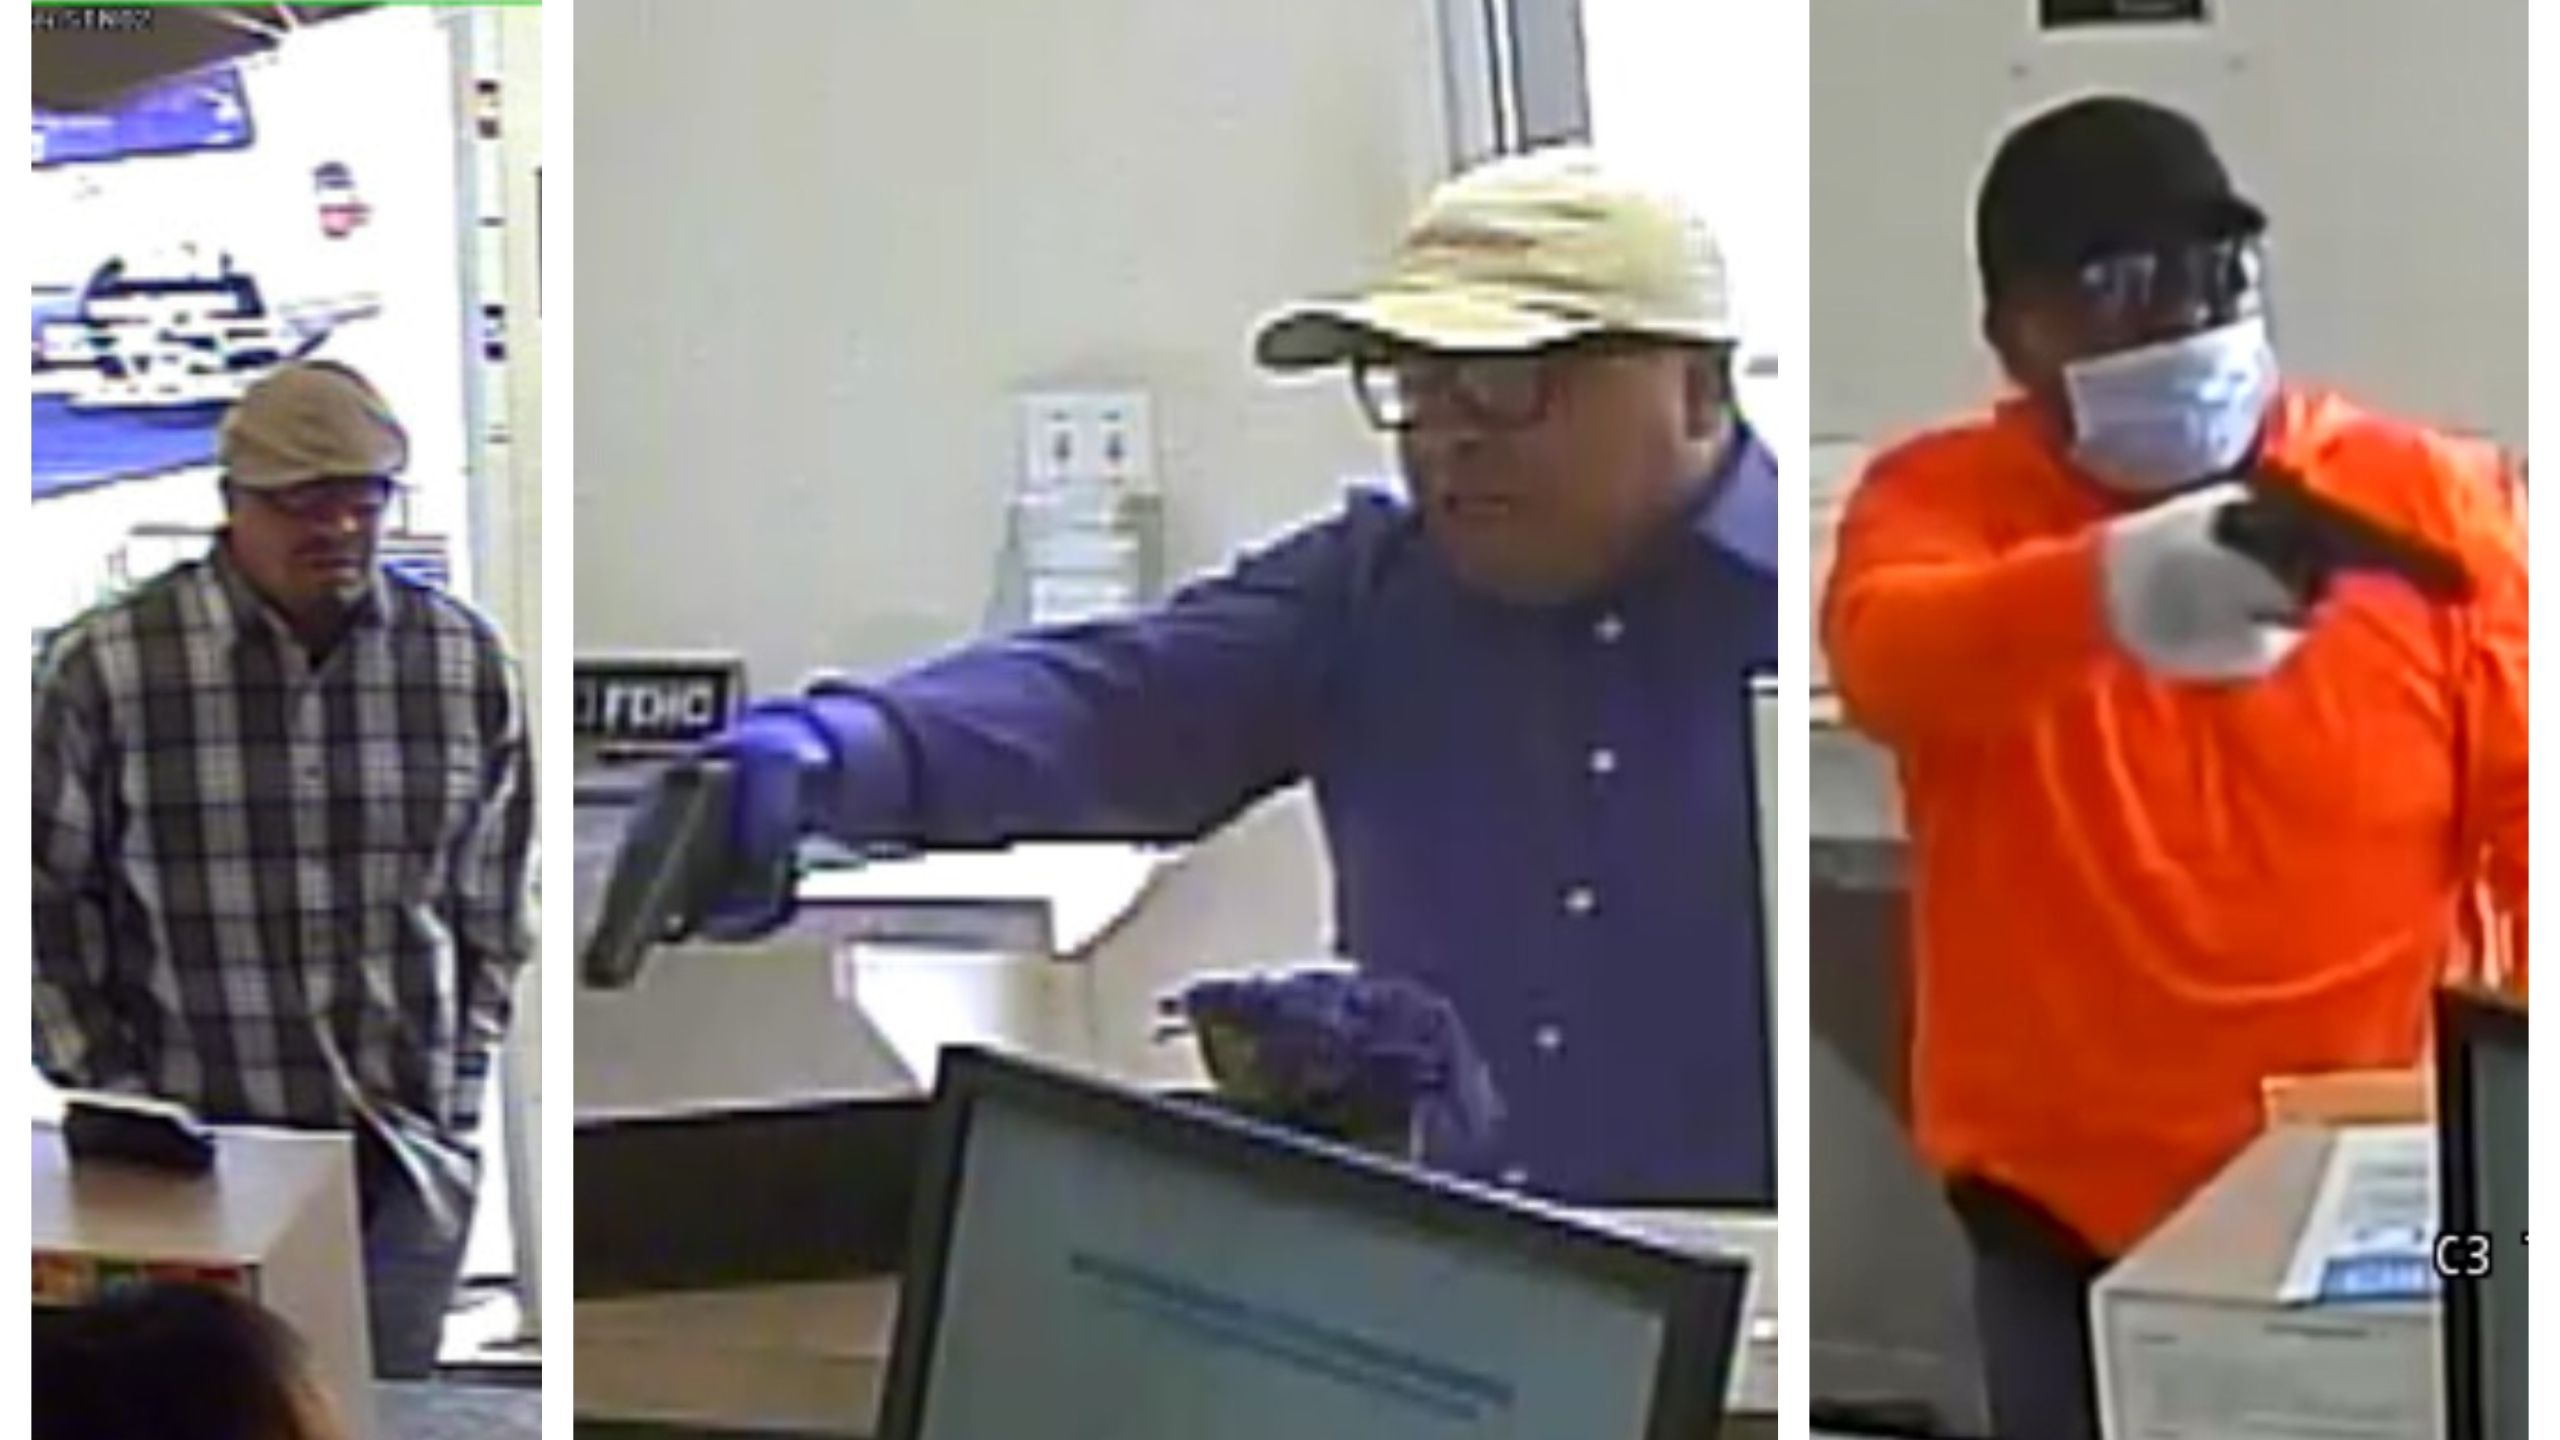 Alleged triple-bank-robber wanted by deputies after failing to show in court, Sheriff's Office says